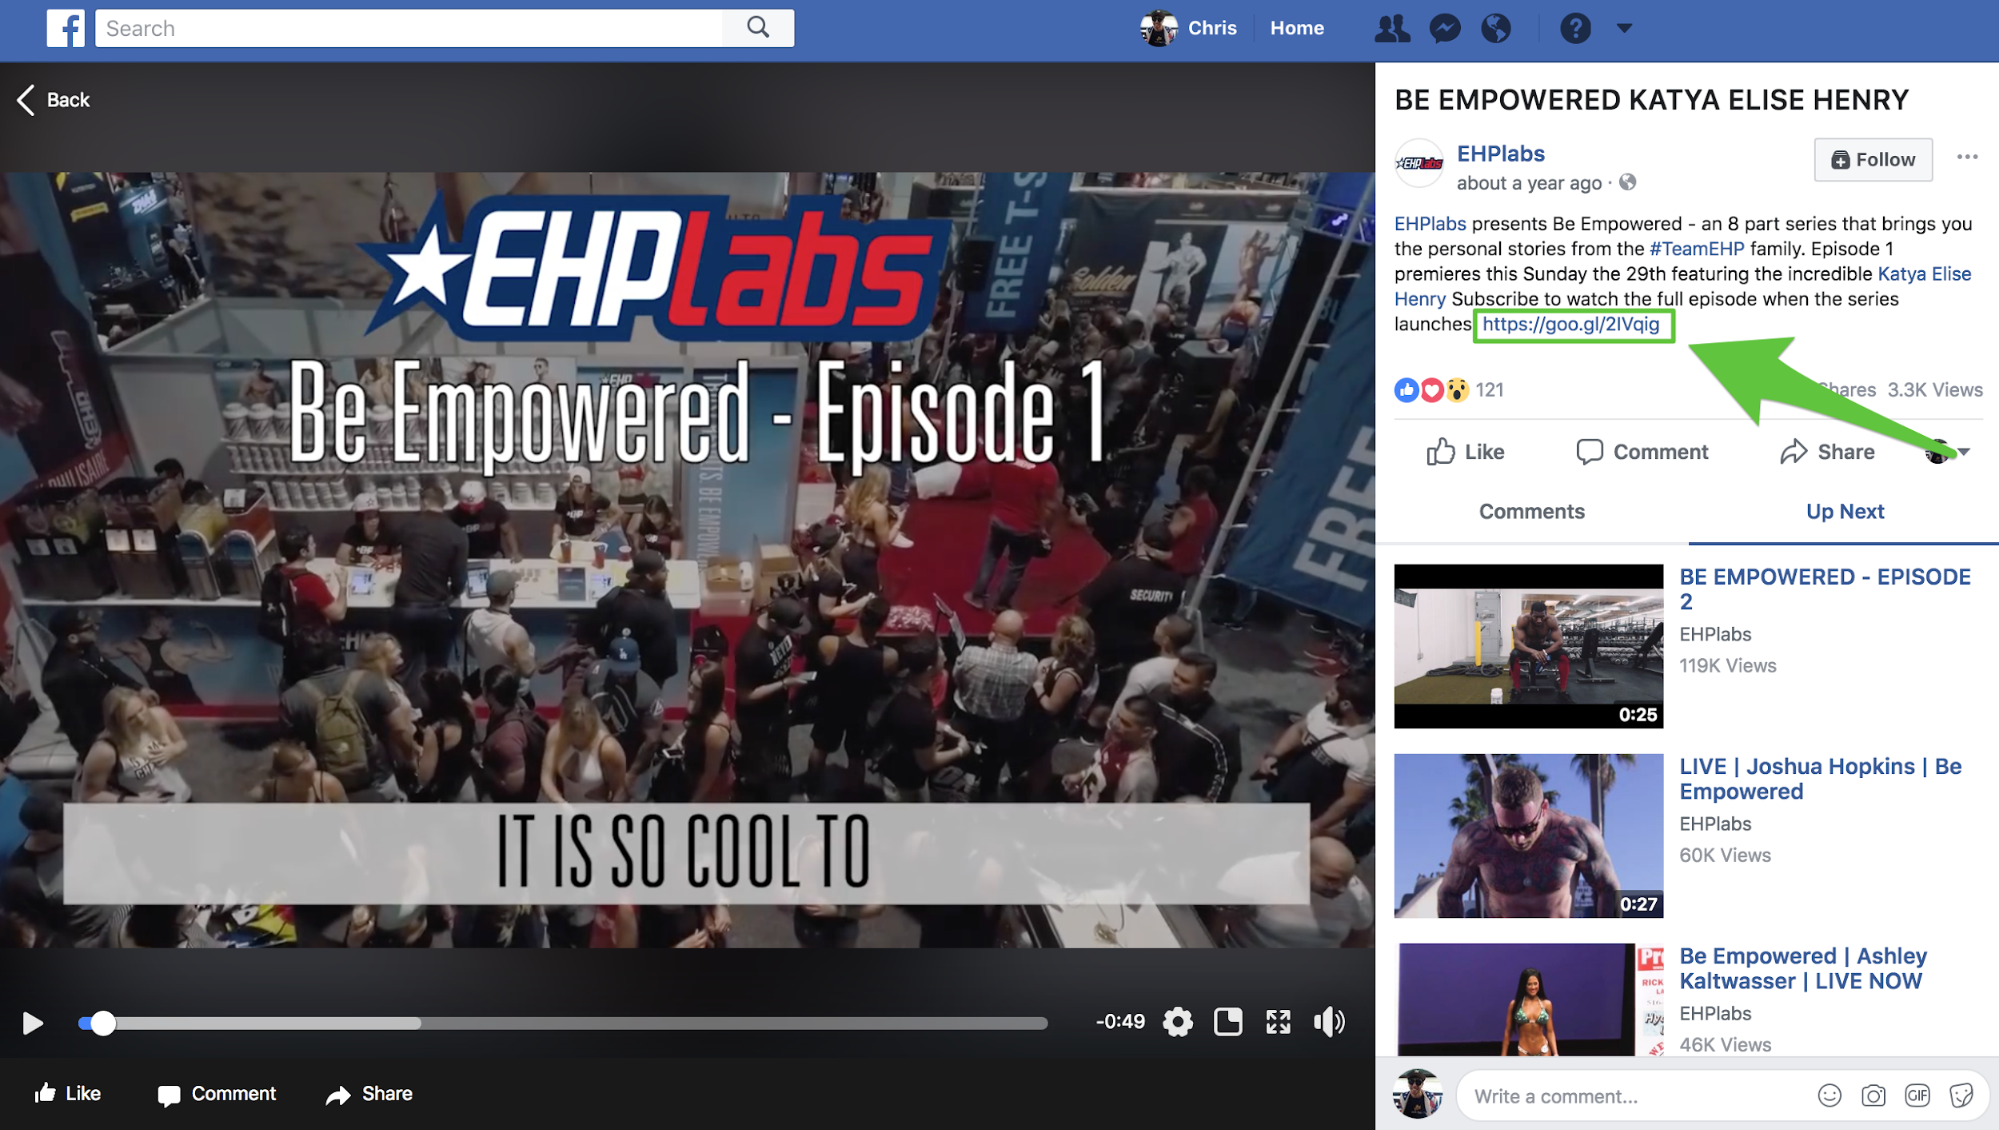 Screenshot showing a Facebook video by EHPlabs